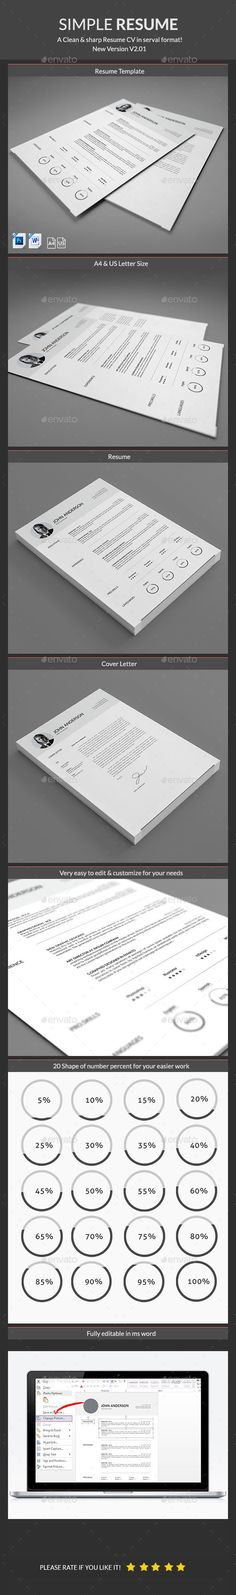 Pin by Camille Azam on MISE EN PAGE Pinterest Creative resume - buy resume templates